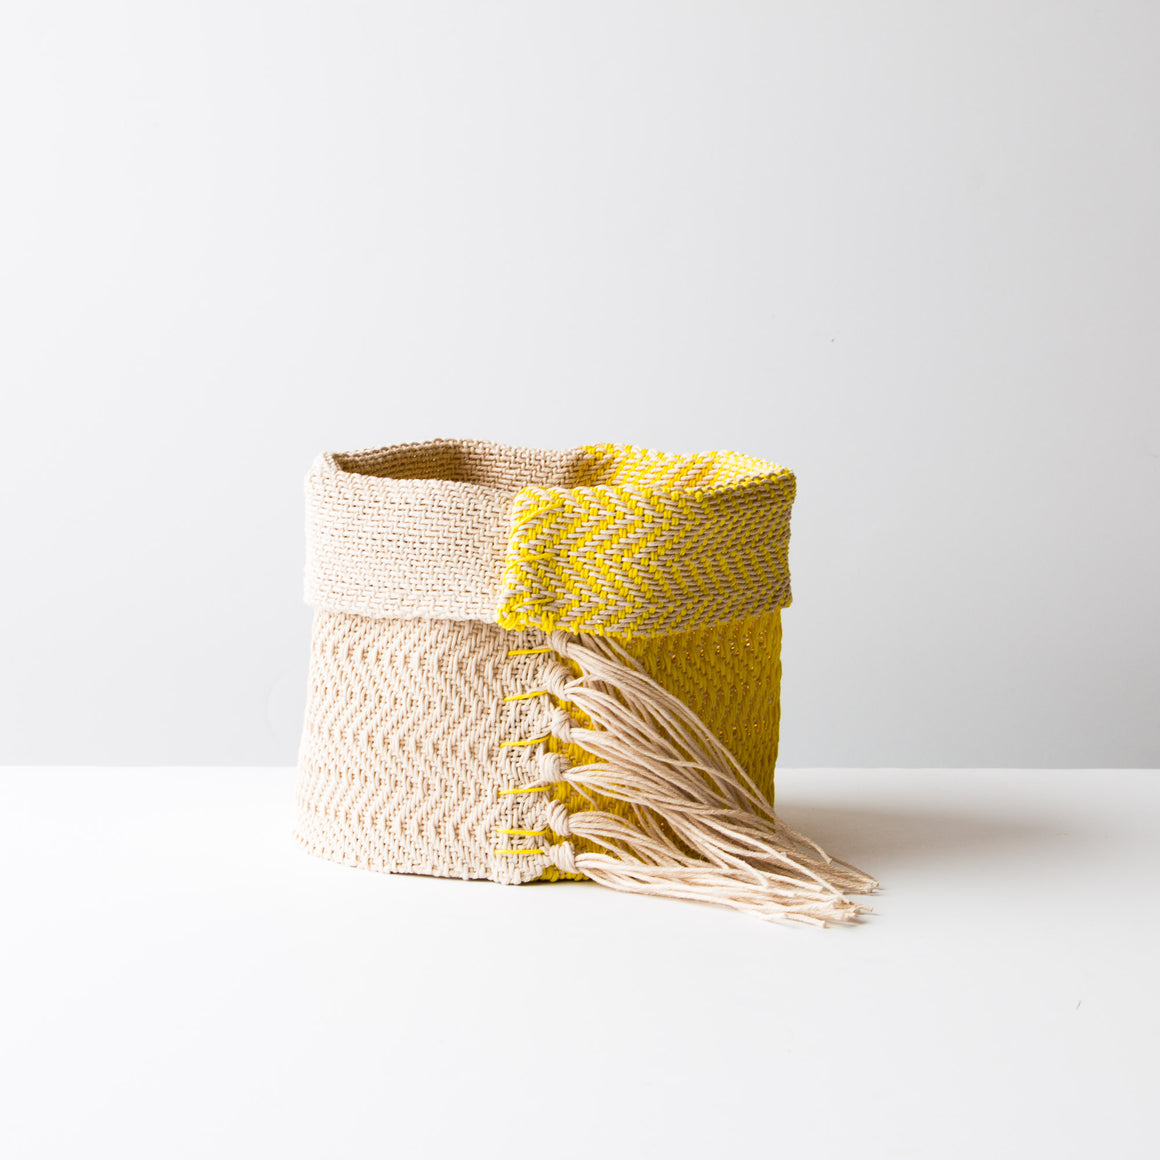 Light Blue & Ecru - Hemp Table Basket (Medium) - Handwoven in Montreal, Quebec, Canada - Sold by Chic & Basta